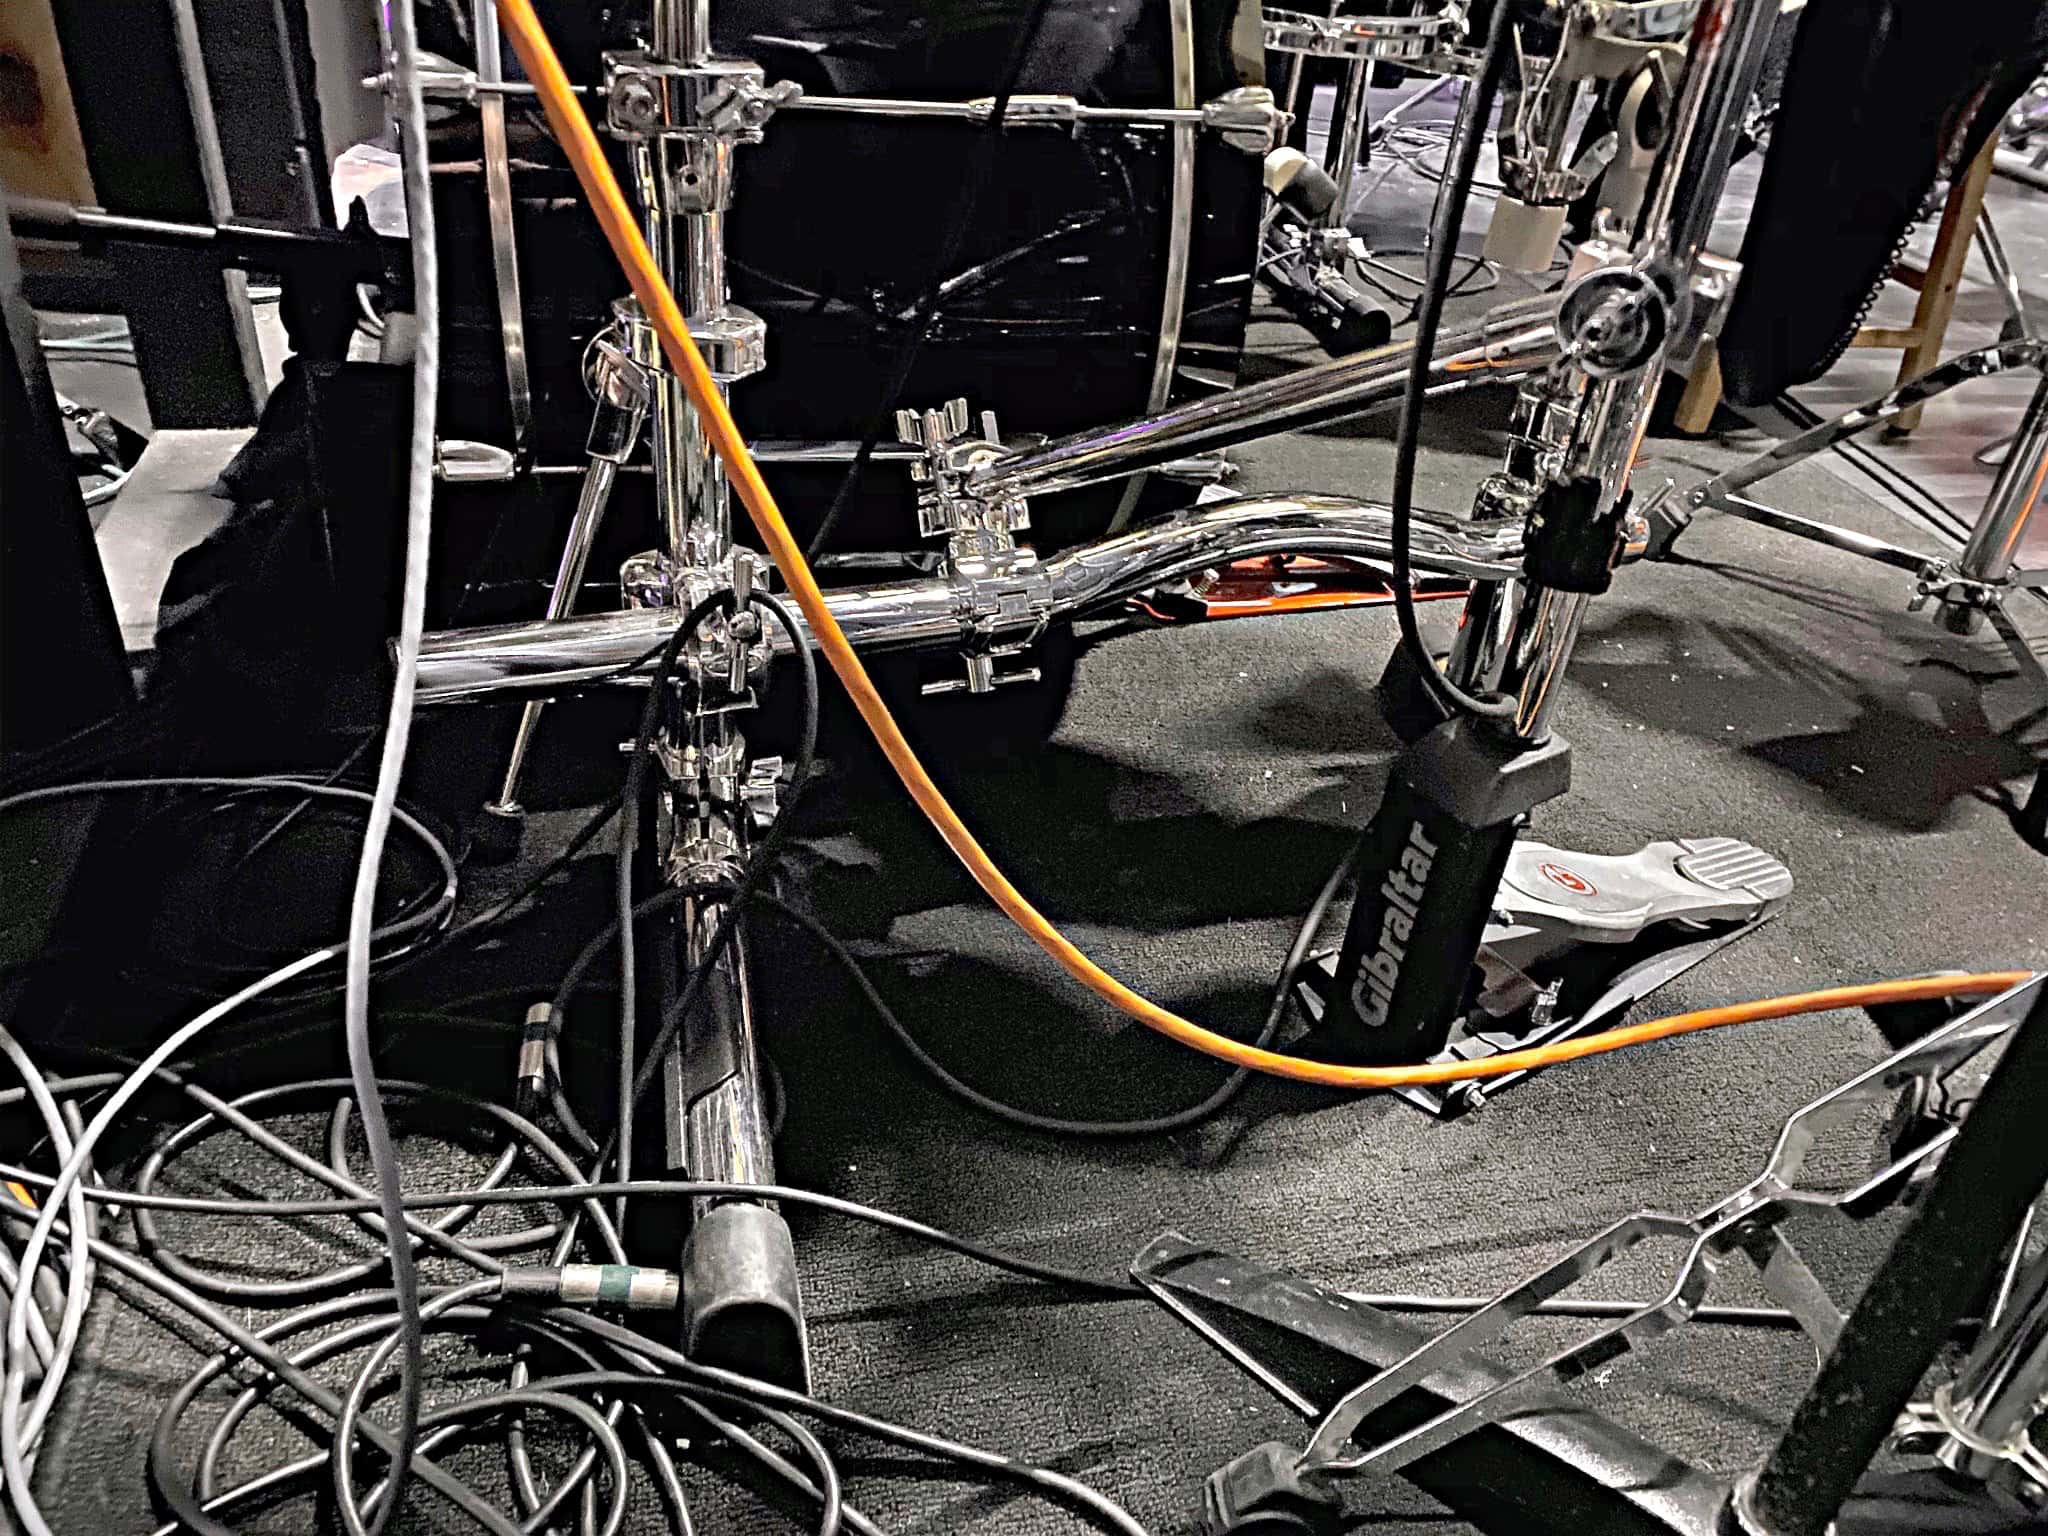 Jeremy Logan's drum set setup for Kiss Me Kate at the William R. Boone High School in Orlando, Florida.